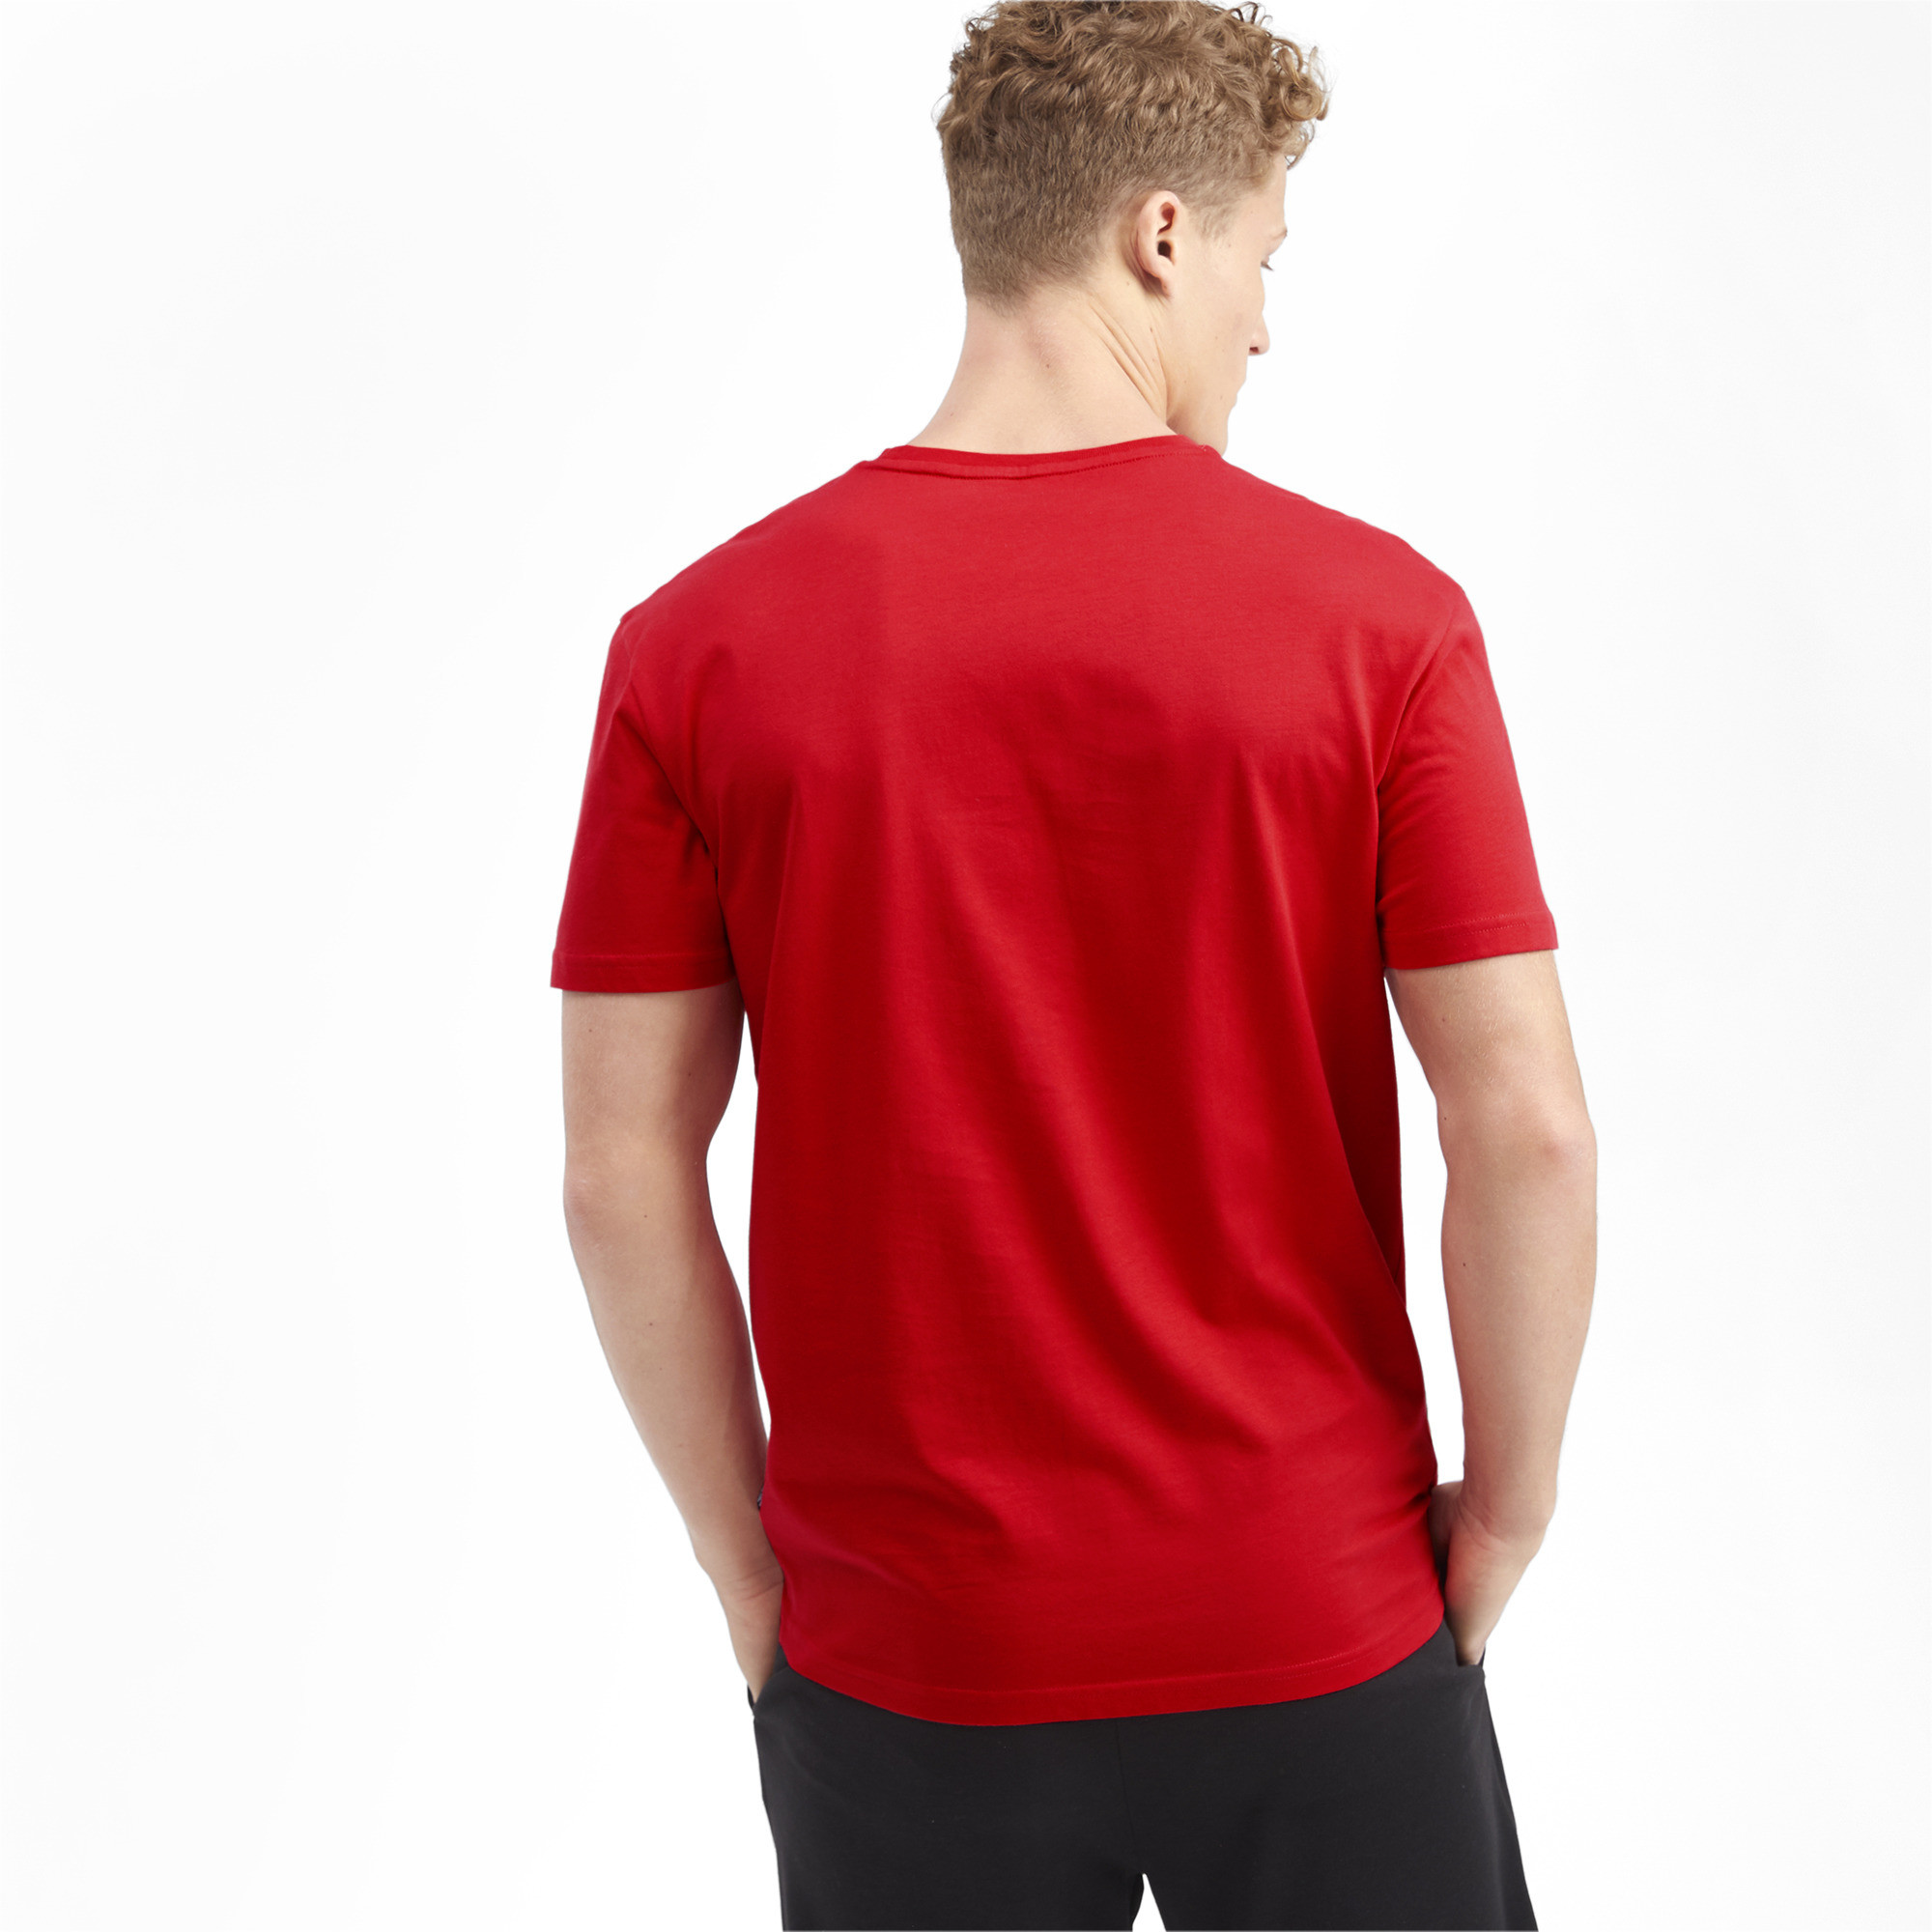 PUMA-Rebel-Bold-Men-039-s-Tee-Men-Tee-Basics thumbnail 5